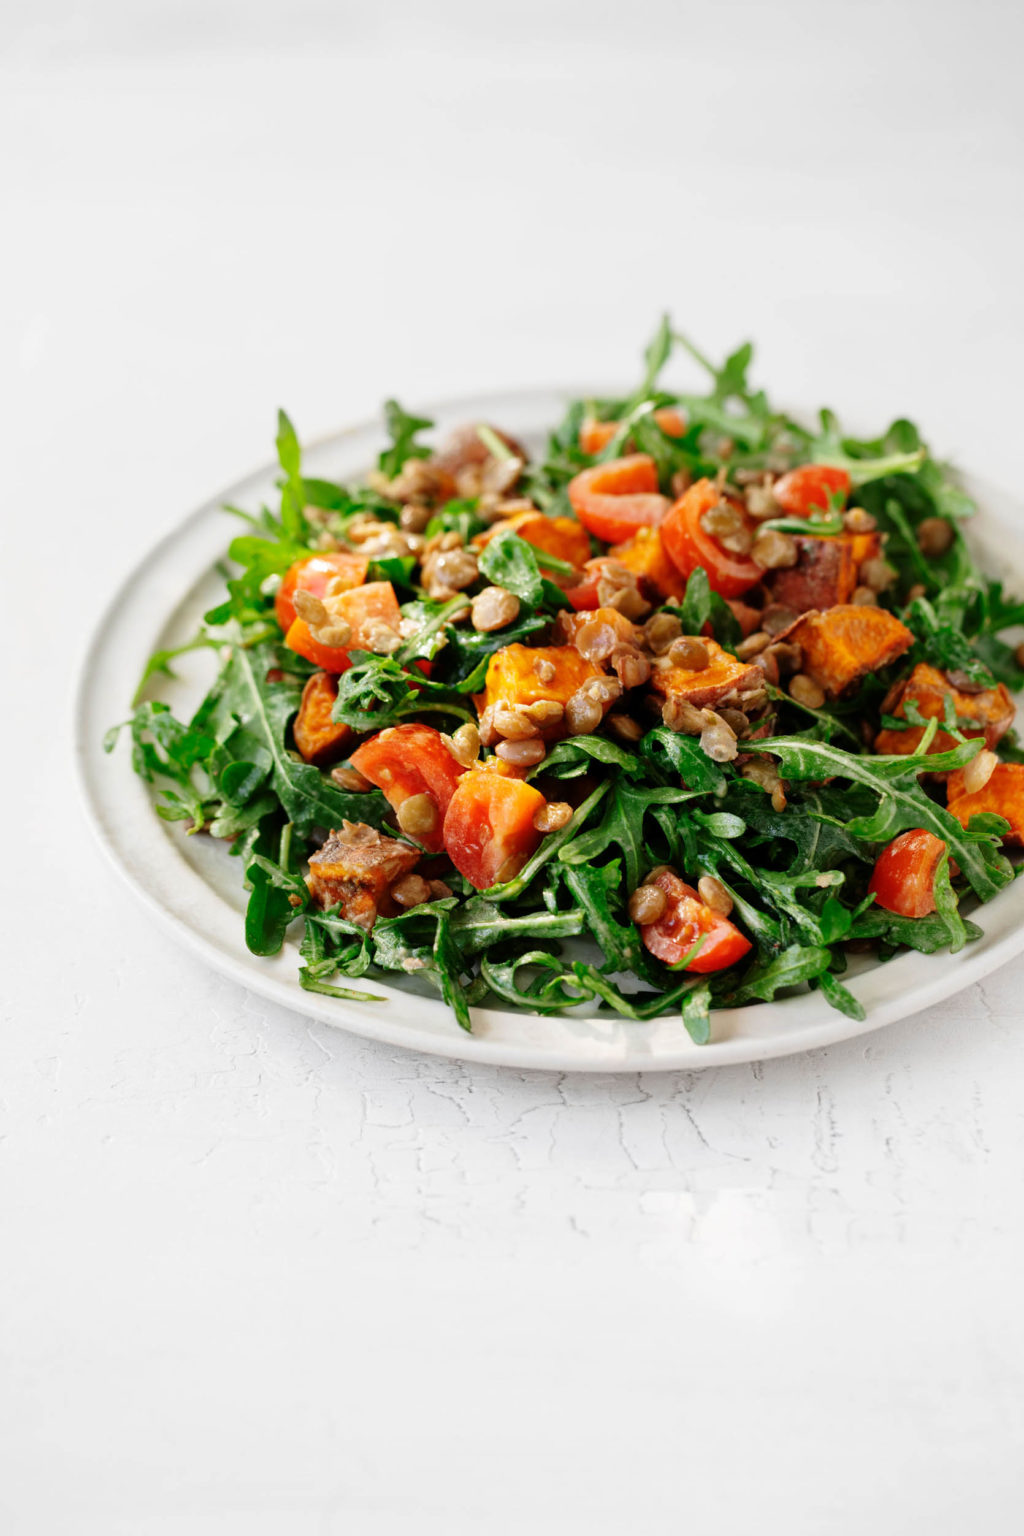 An angled photograph of a white plate covered with a plant-based, lentil tahini sweet potato salad..